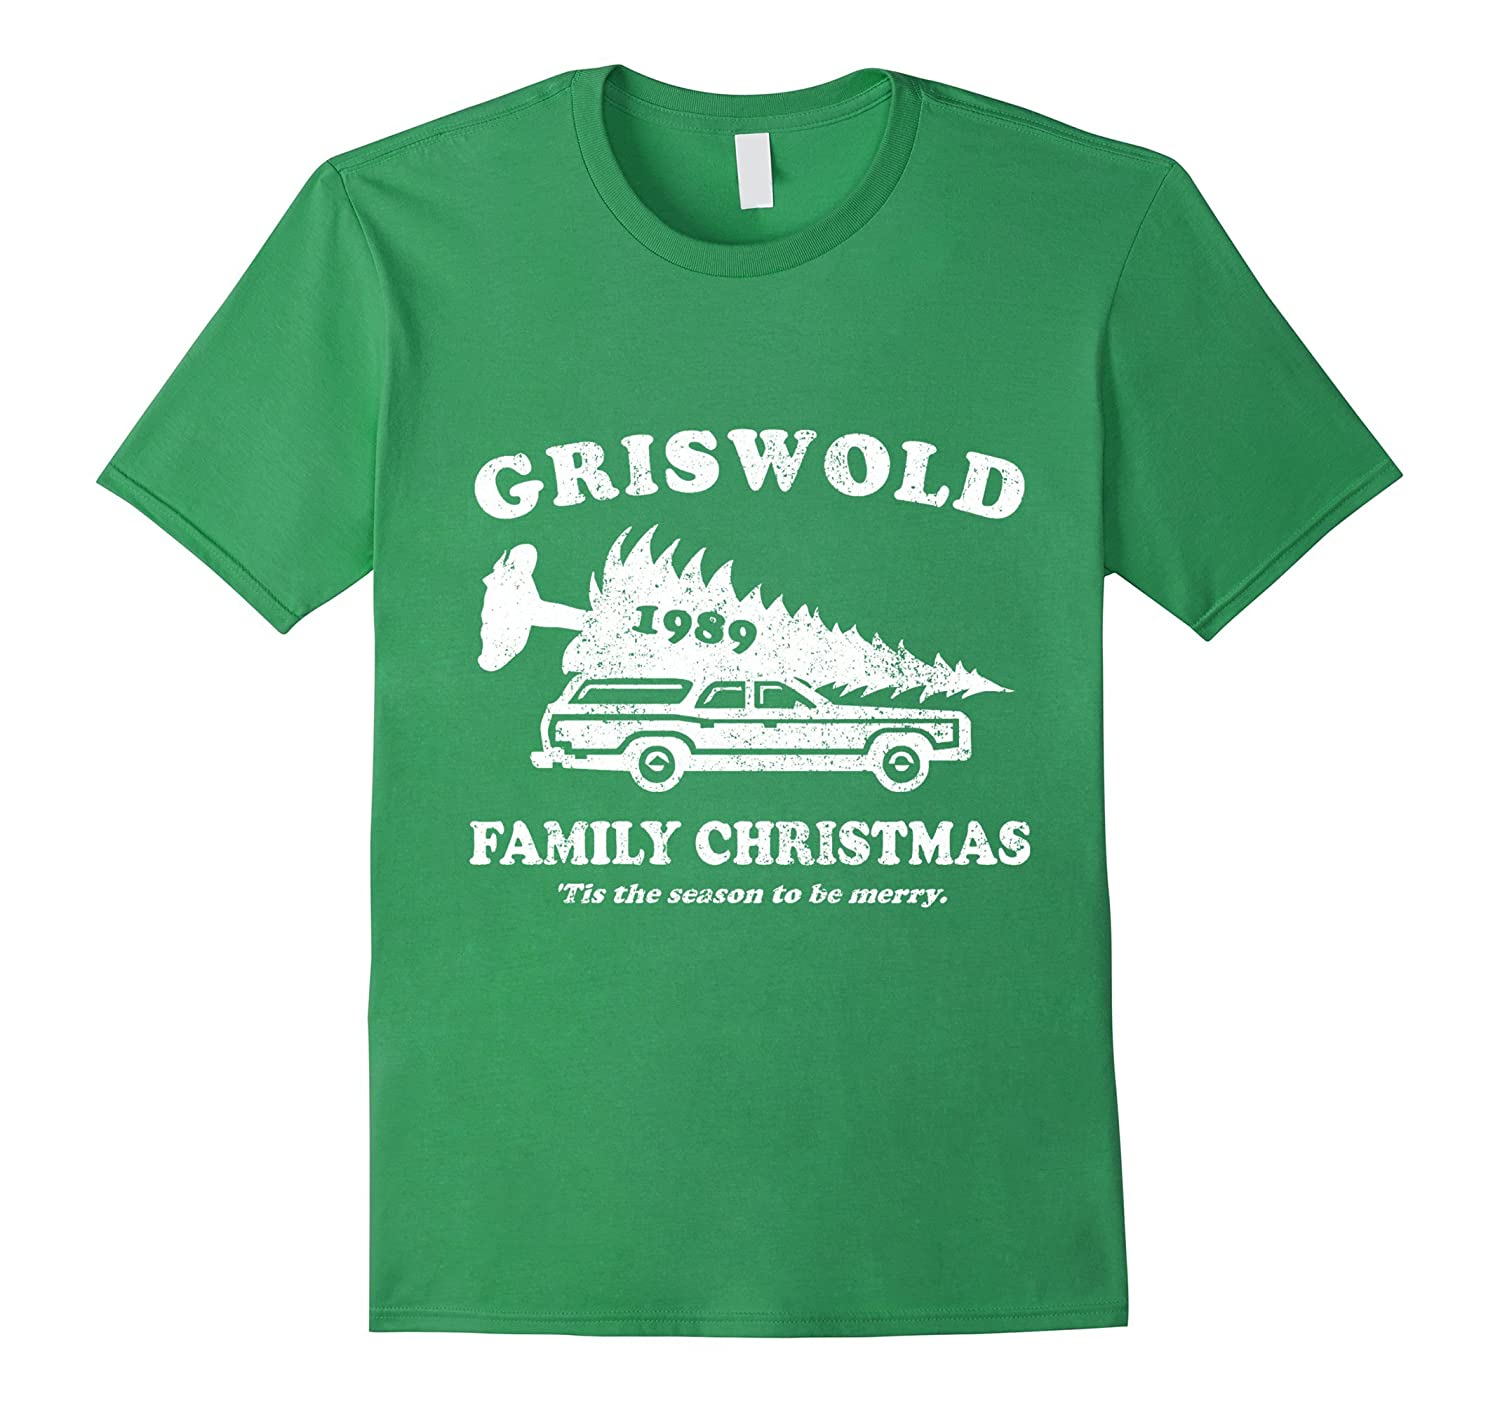 griswold women Learn how to get a girlfriend how to seduce women how to pick up women at bars learn more tips and other educational videos @ wwwiknowdatingcom.